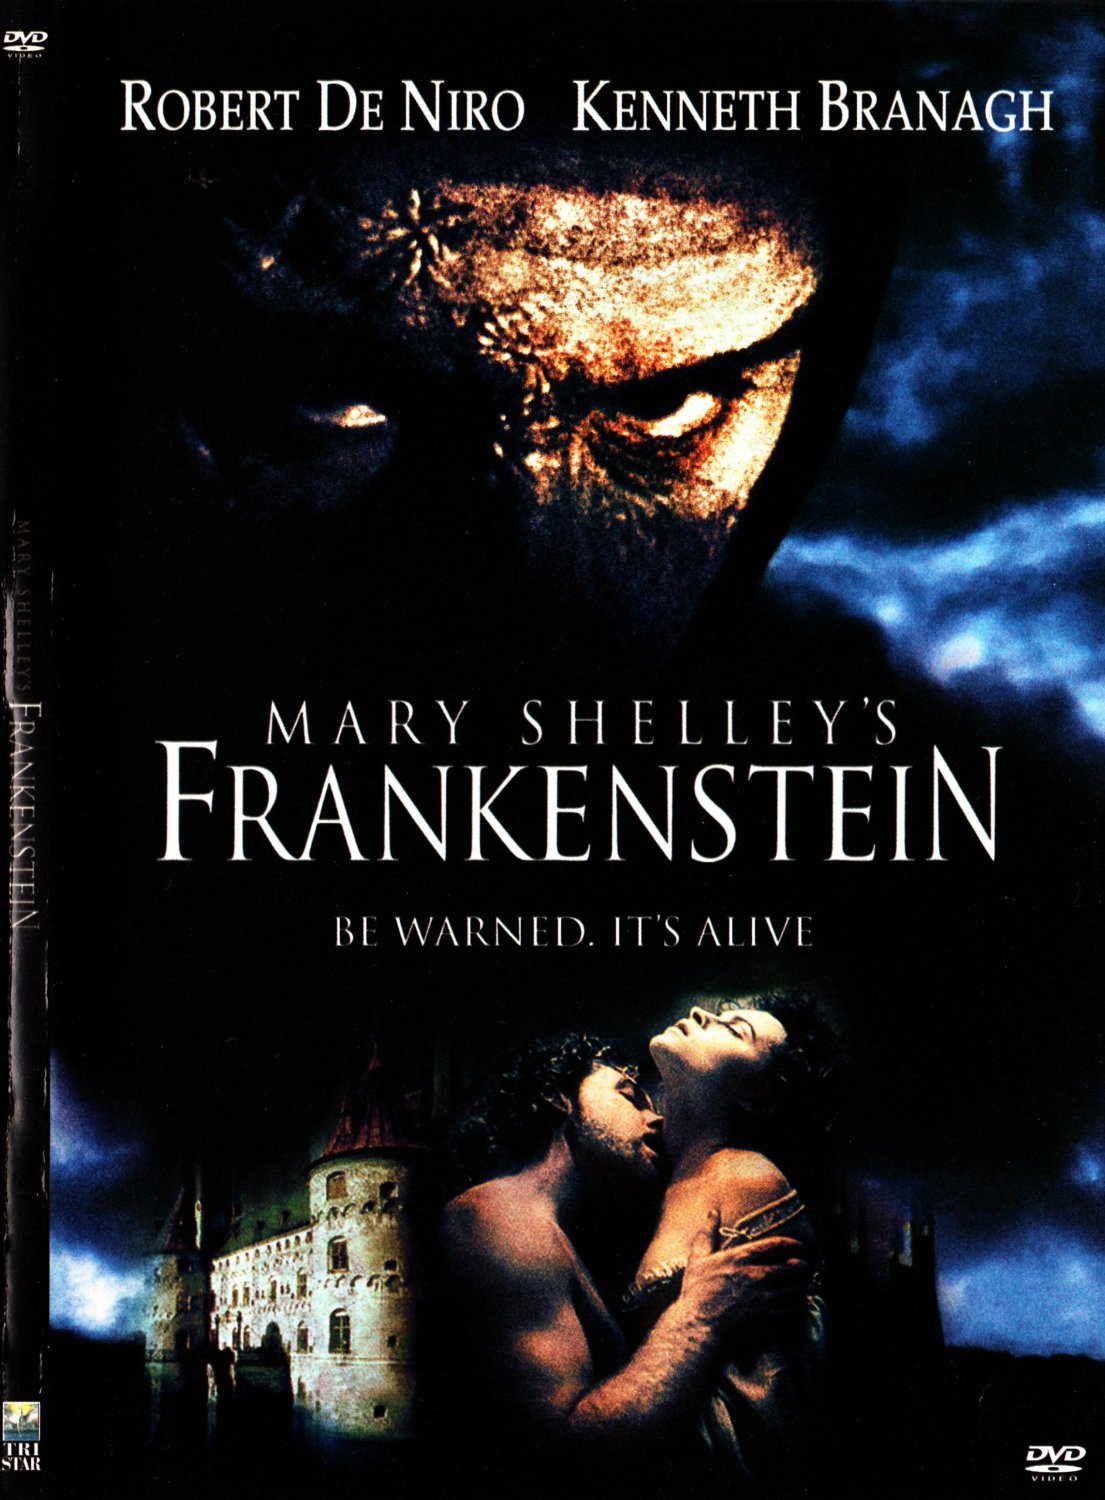 Frankenstein by Mary Shelley 2004 Folio Book Excellent Condition